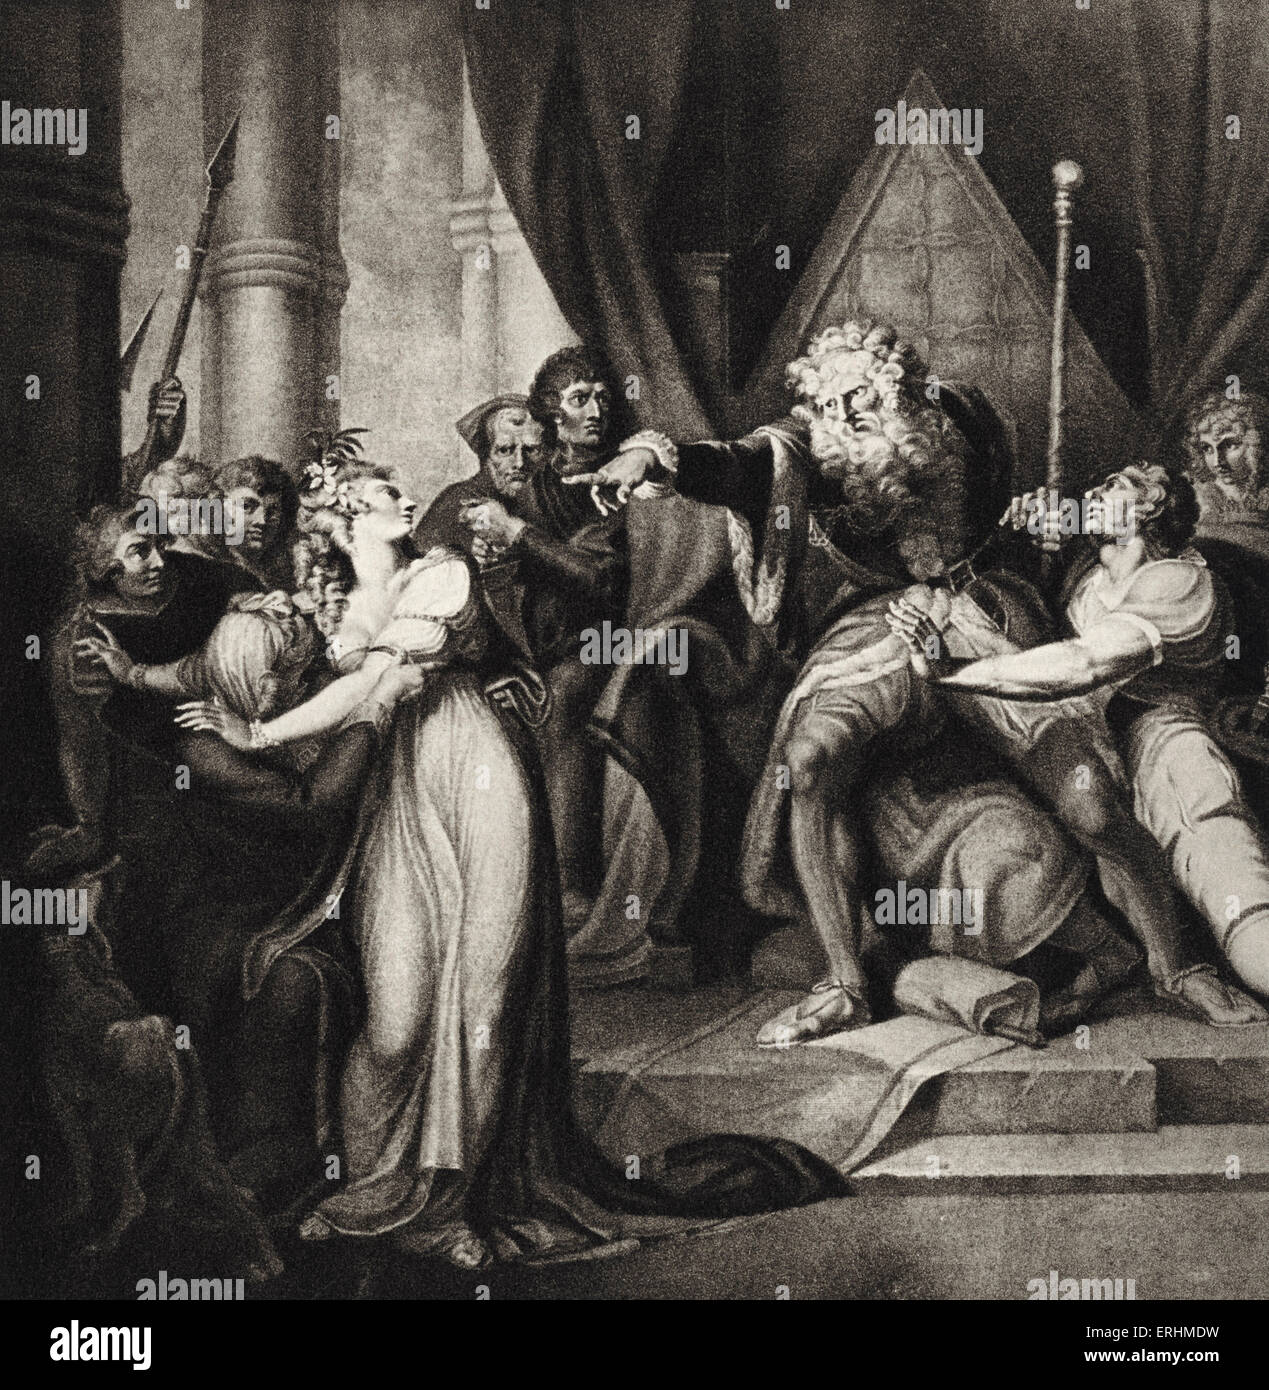 a review of william shakespeares macbeth He then wrote mainly tragedies until about 1608, including hamlet, othello, king lear and macbeth william shakespeare was the son of john shakespeare.